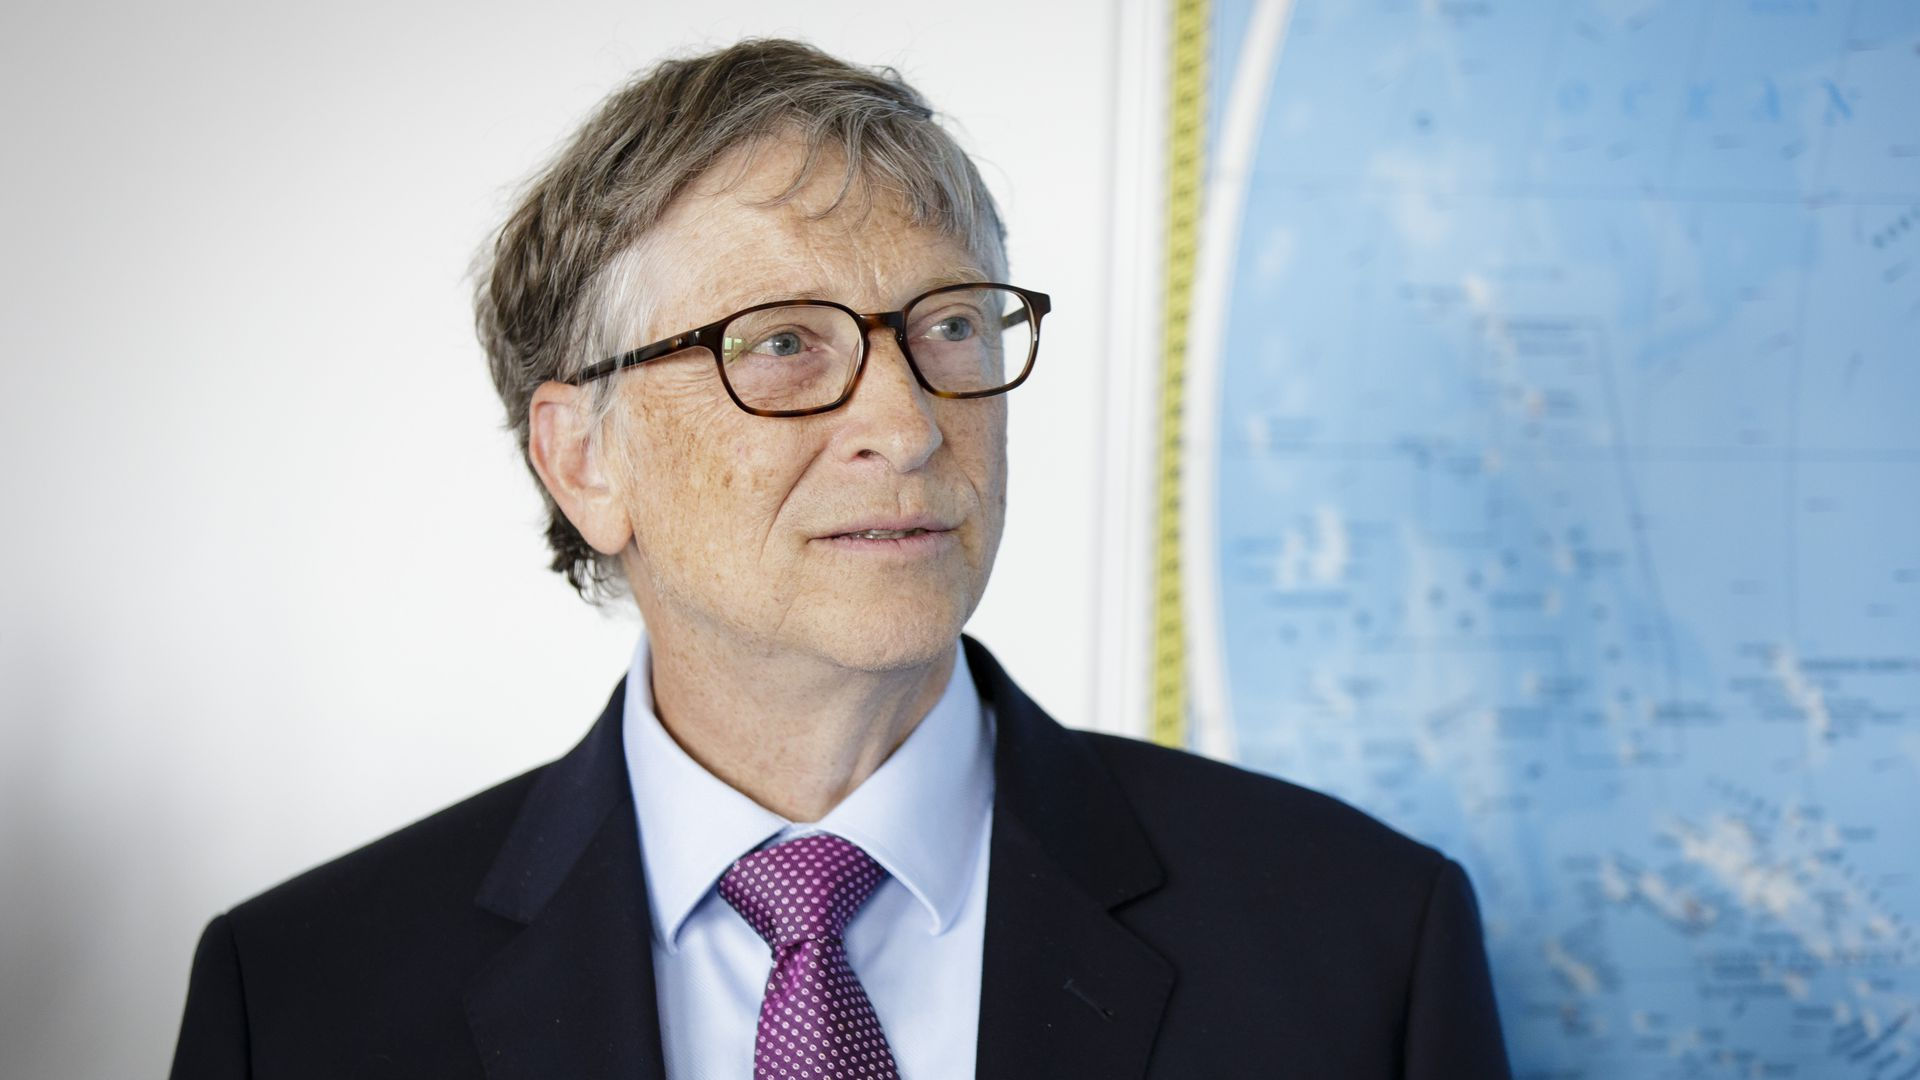 Bill Gates in front of map